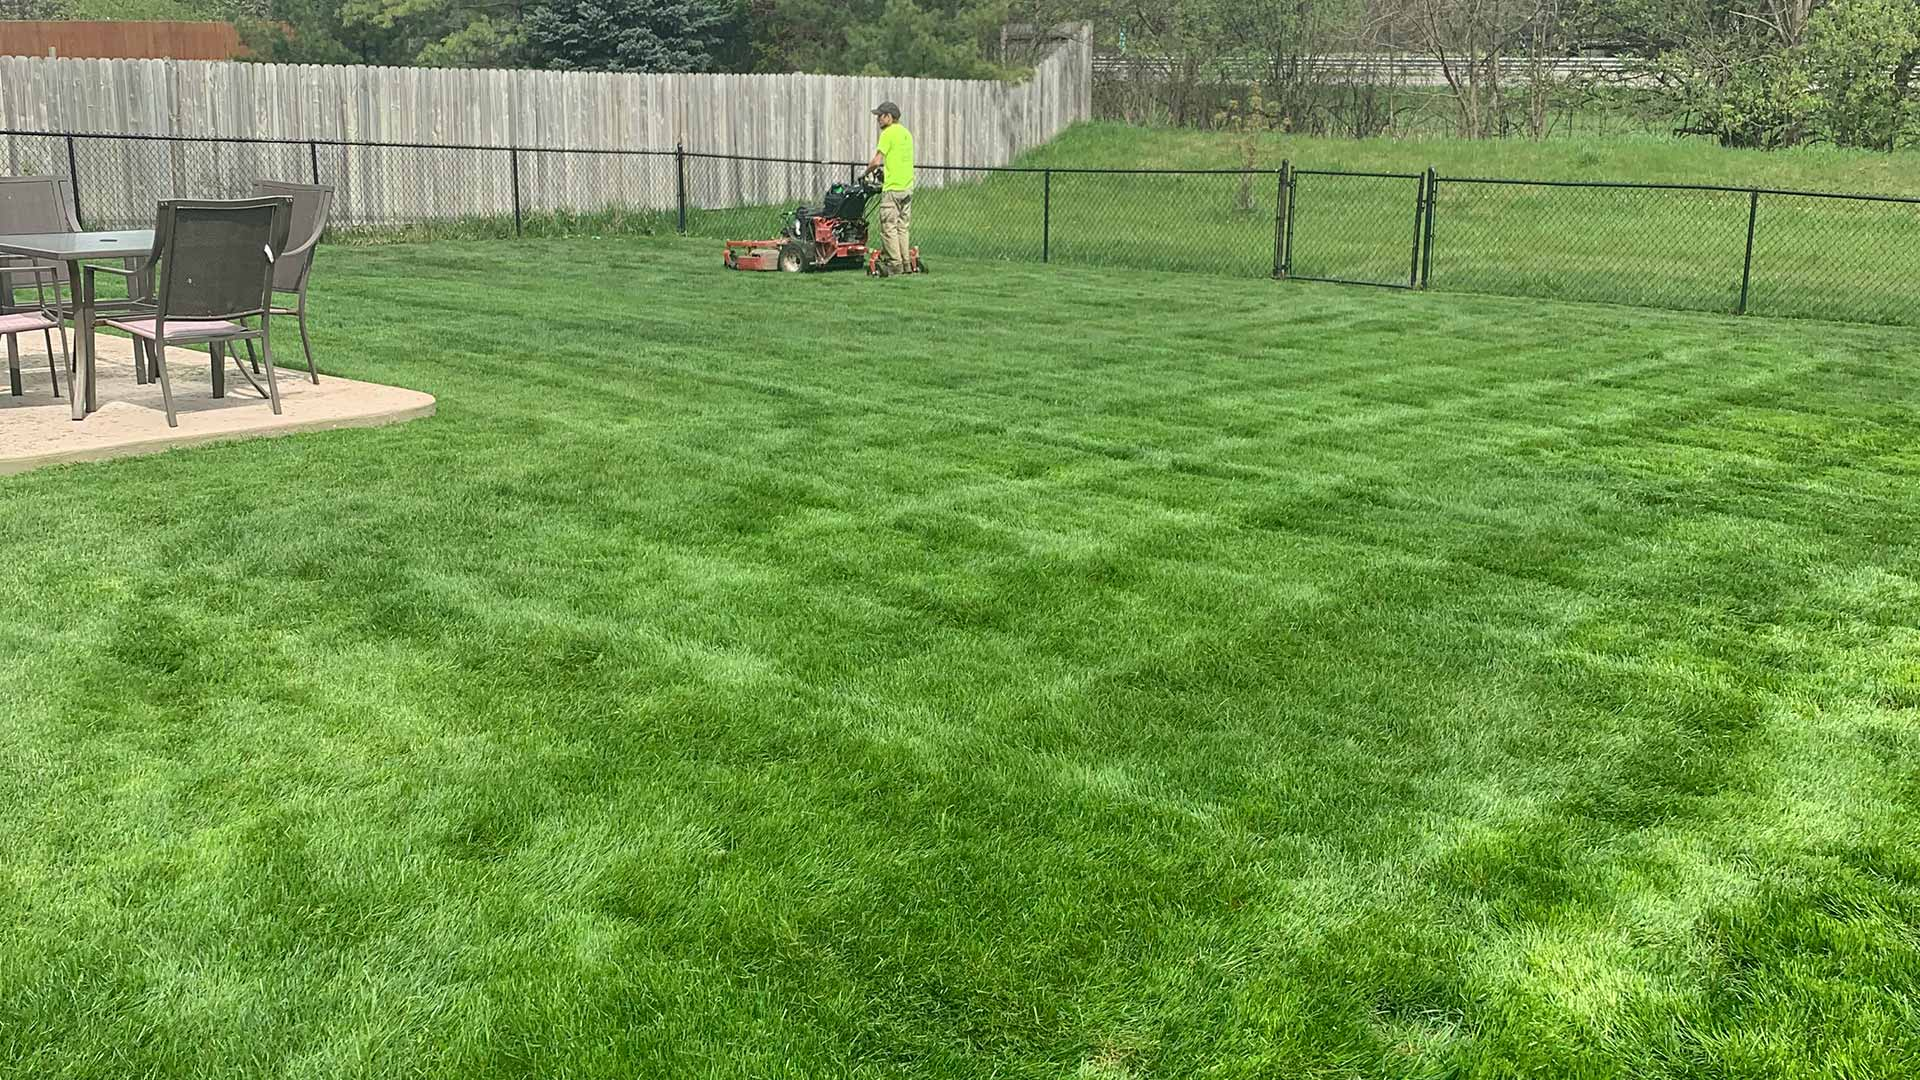 A Shelby, MI home lawn being mowed after a spring yard cleanup.